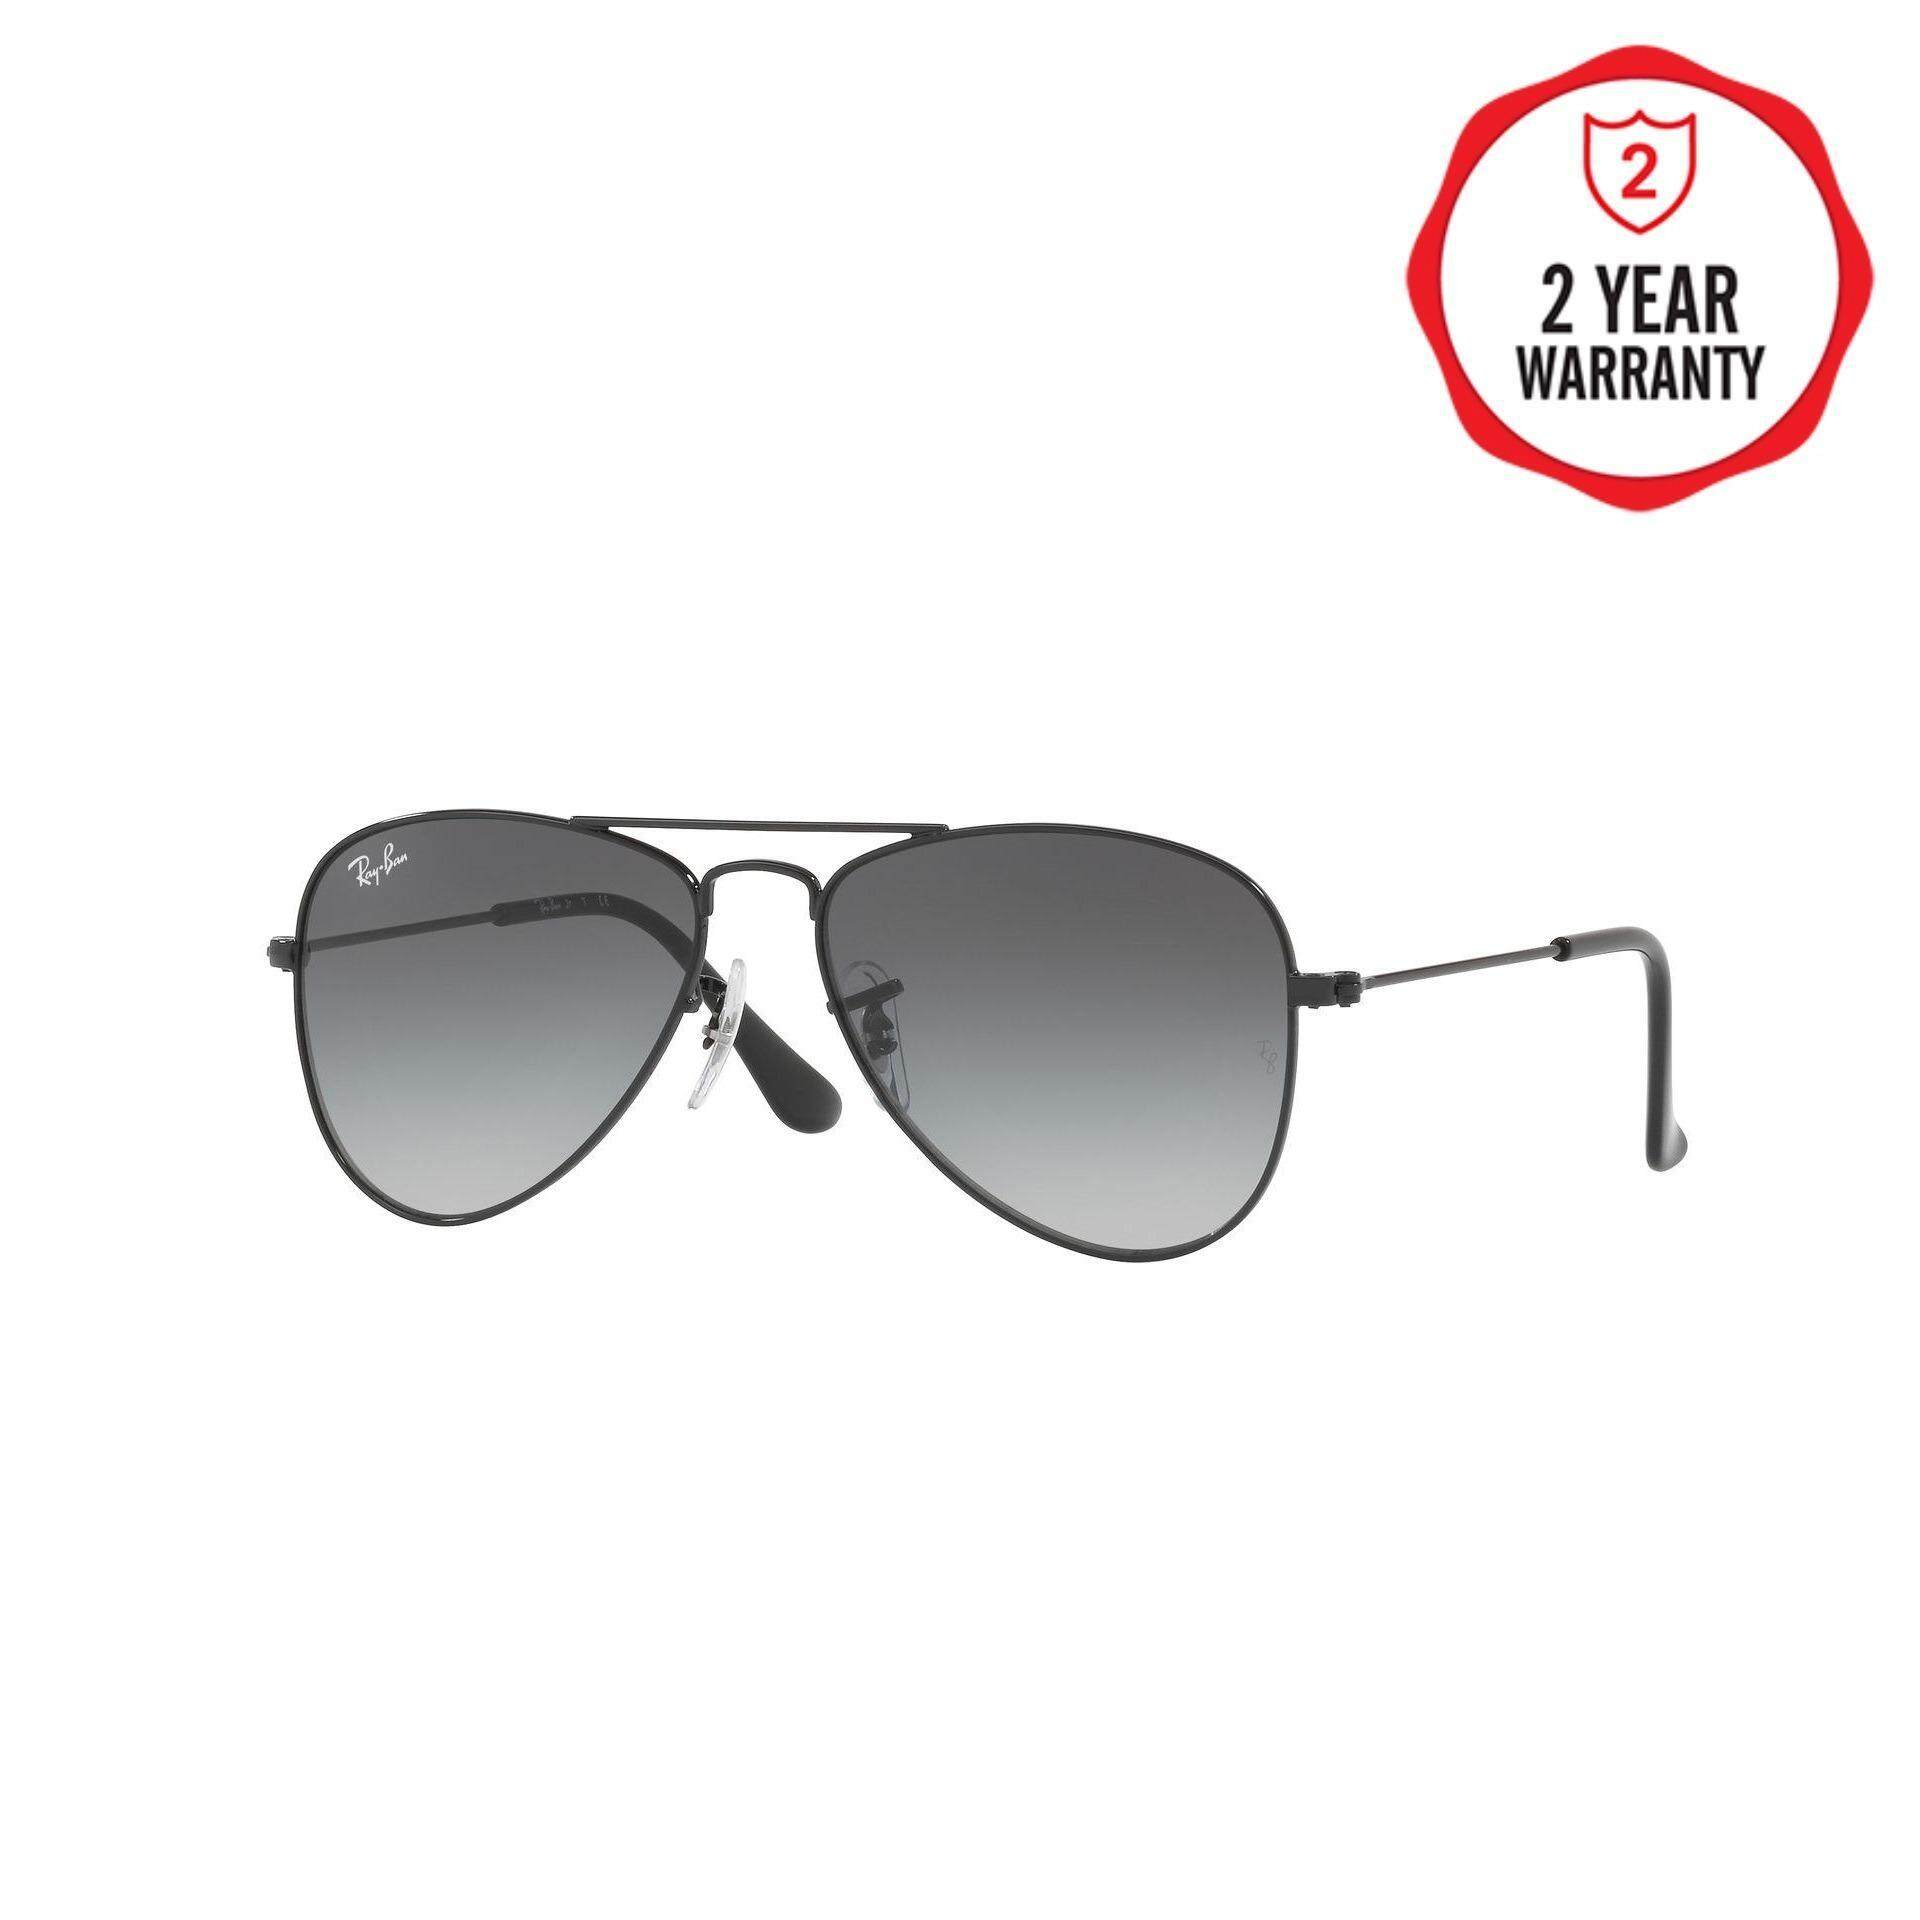 Ray Ban Products for the Best Price in Malaysia 5ea6436cc9